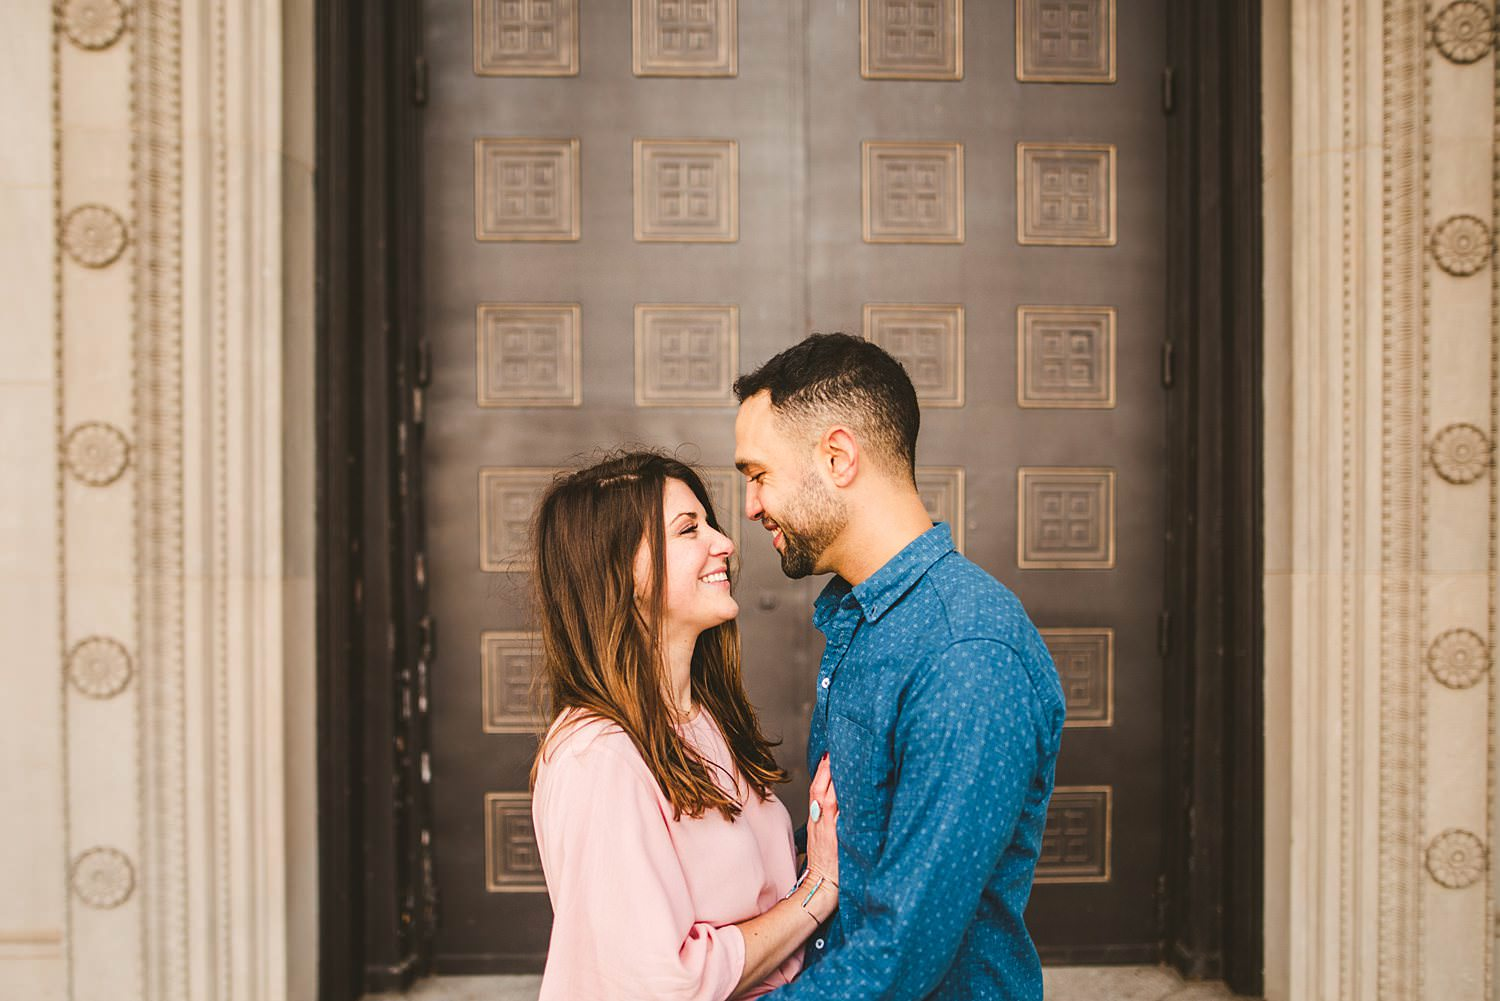 Downtown Chicago Engagement Photos - Museum of Science and Industry Session - Elizabeth and Dan -05.jpg